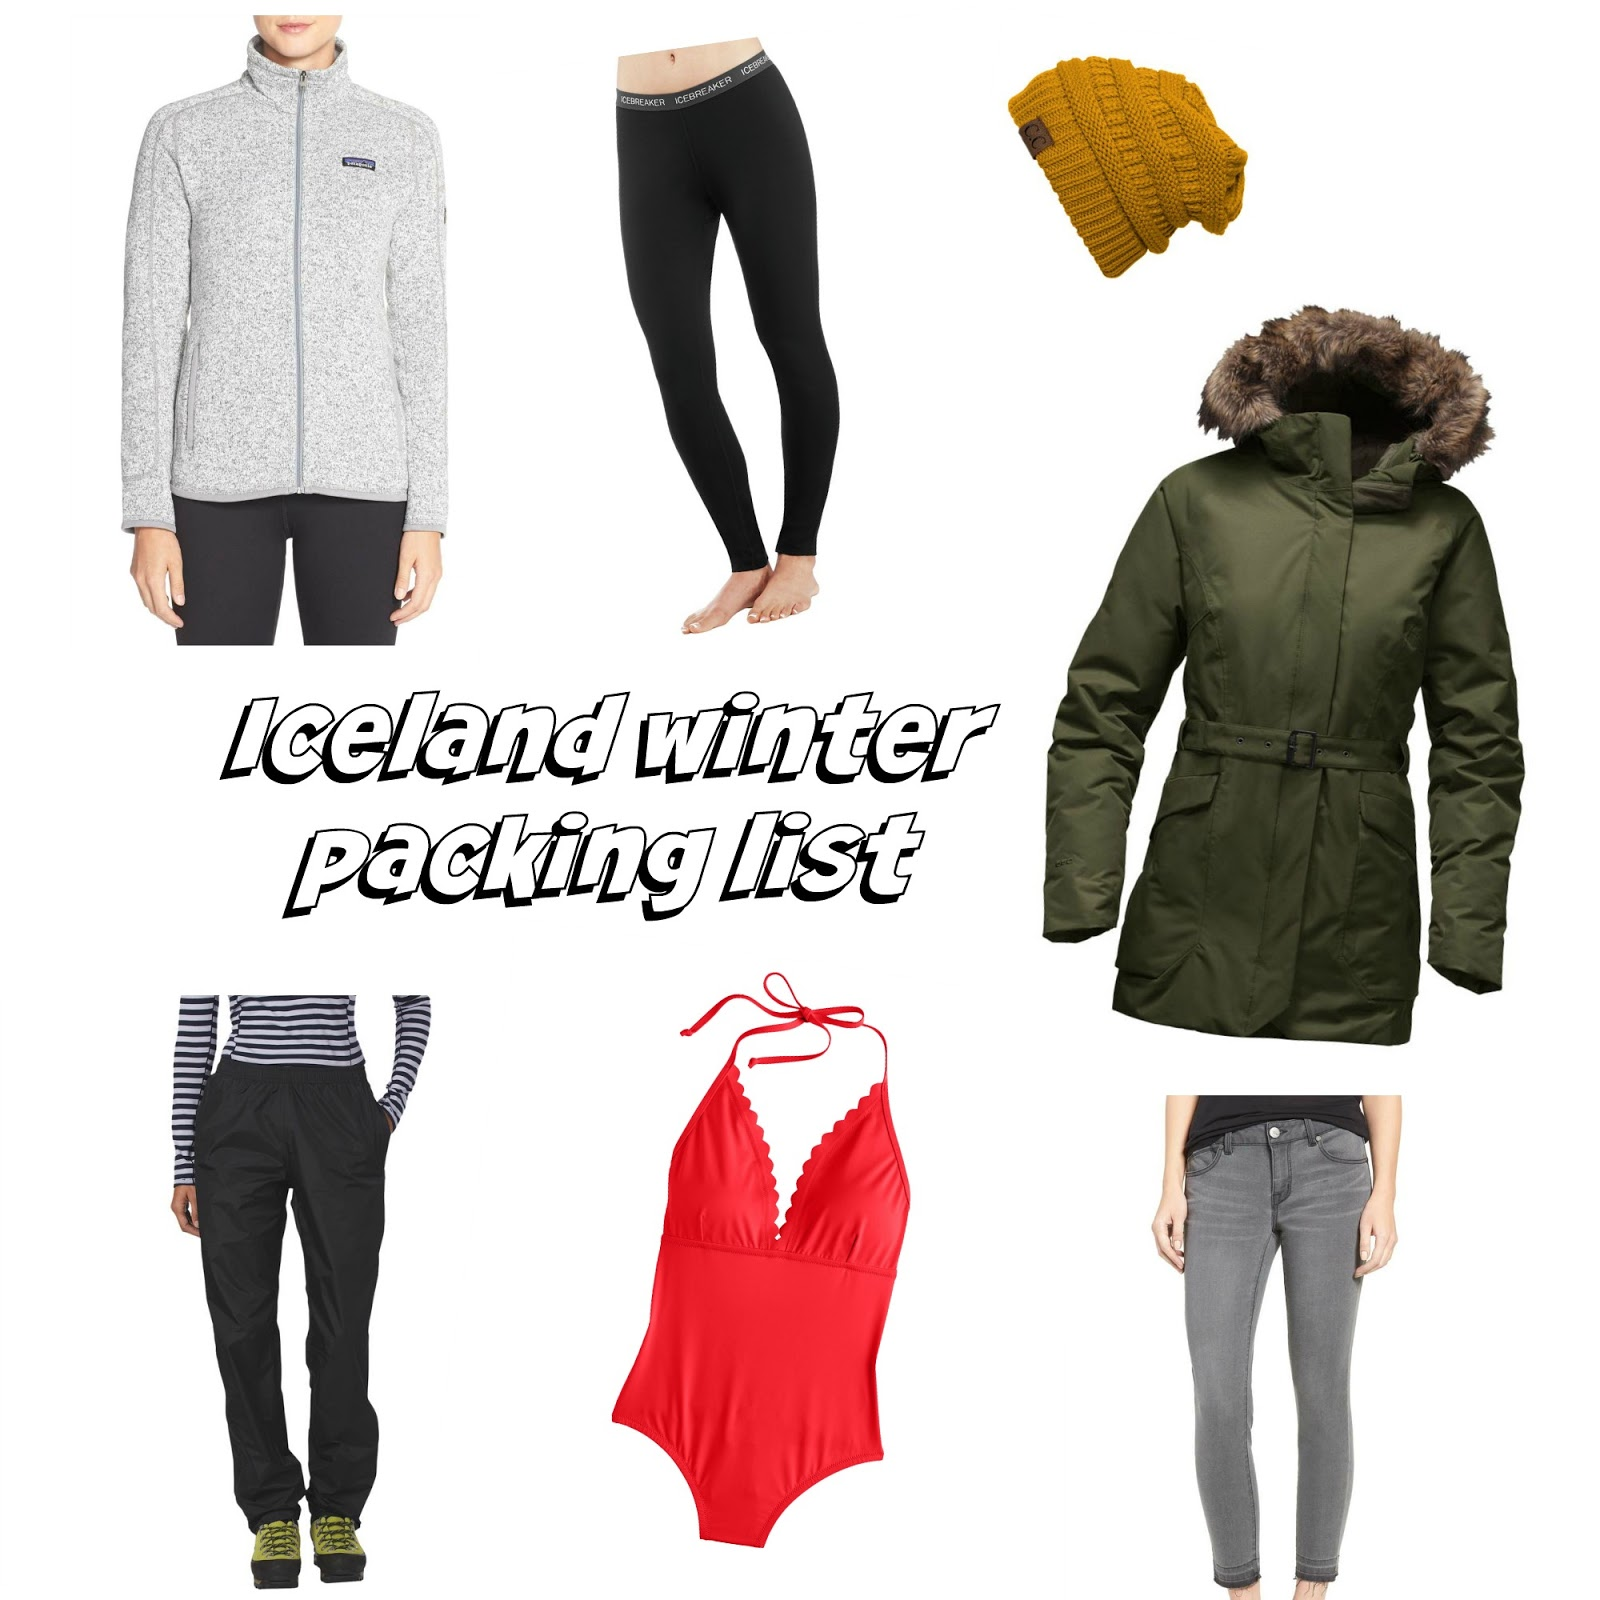 iceland winter packing list